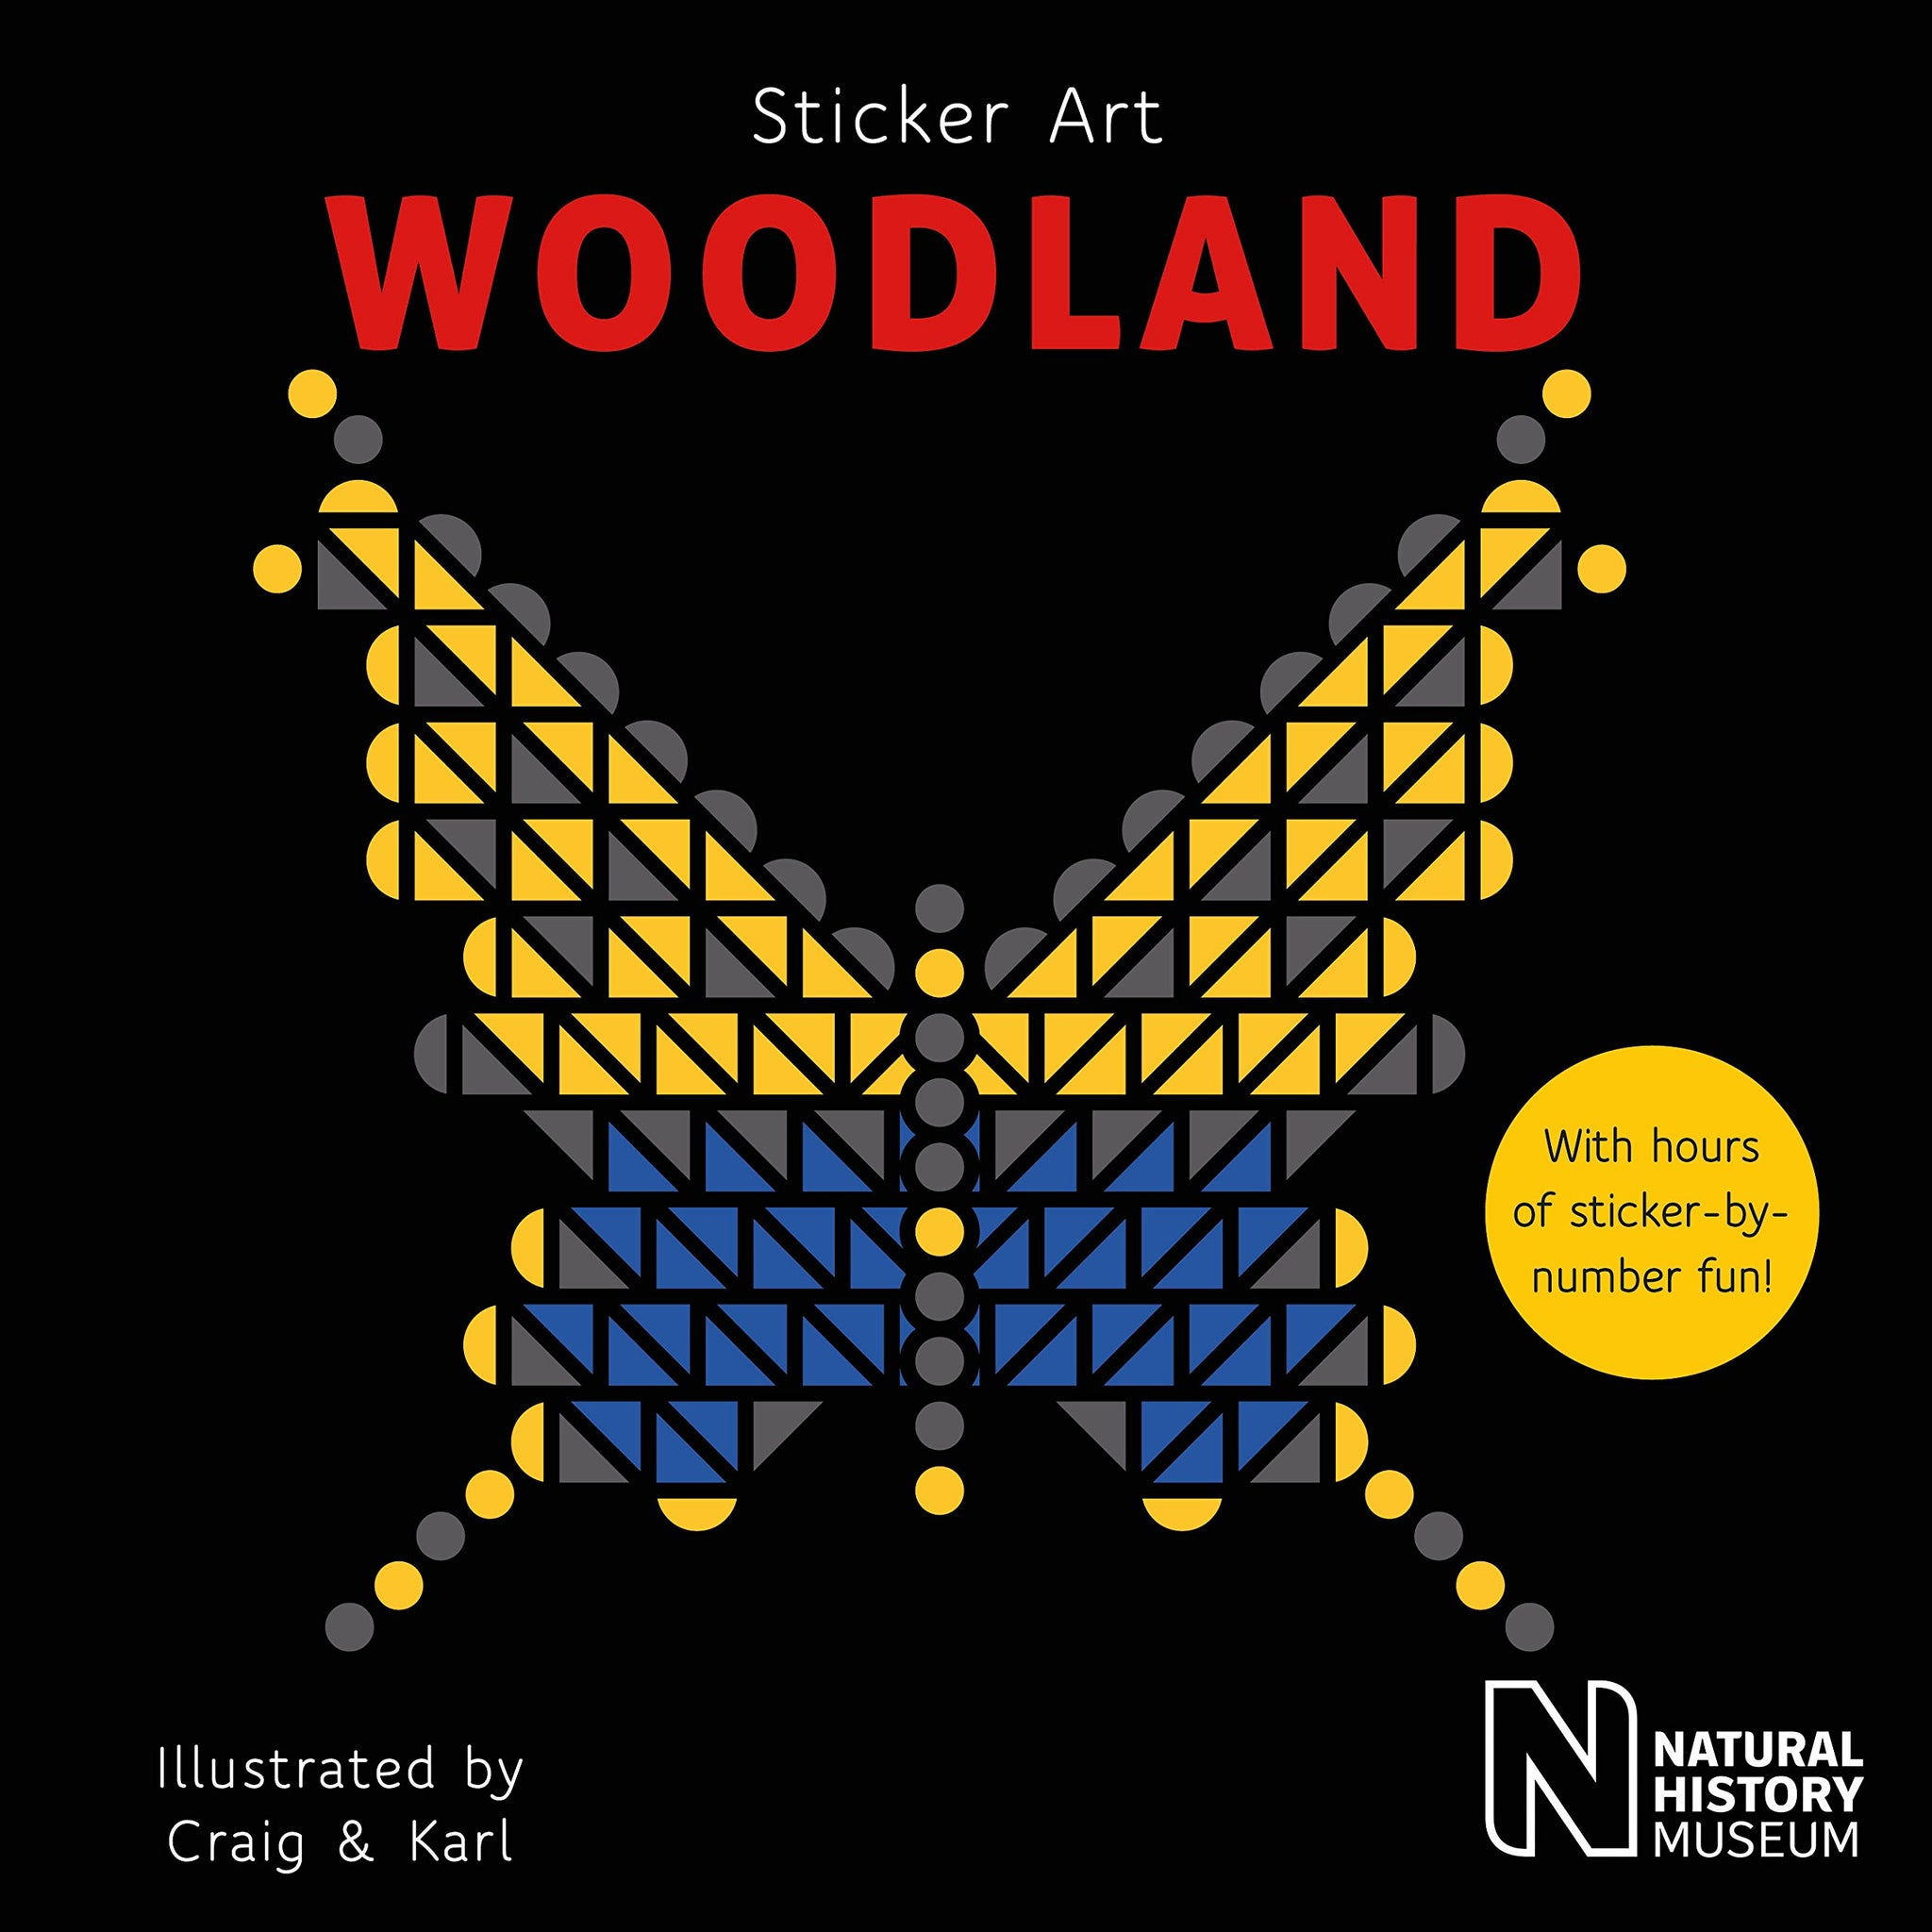 Sticker Art Woodland